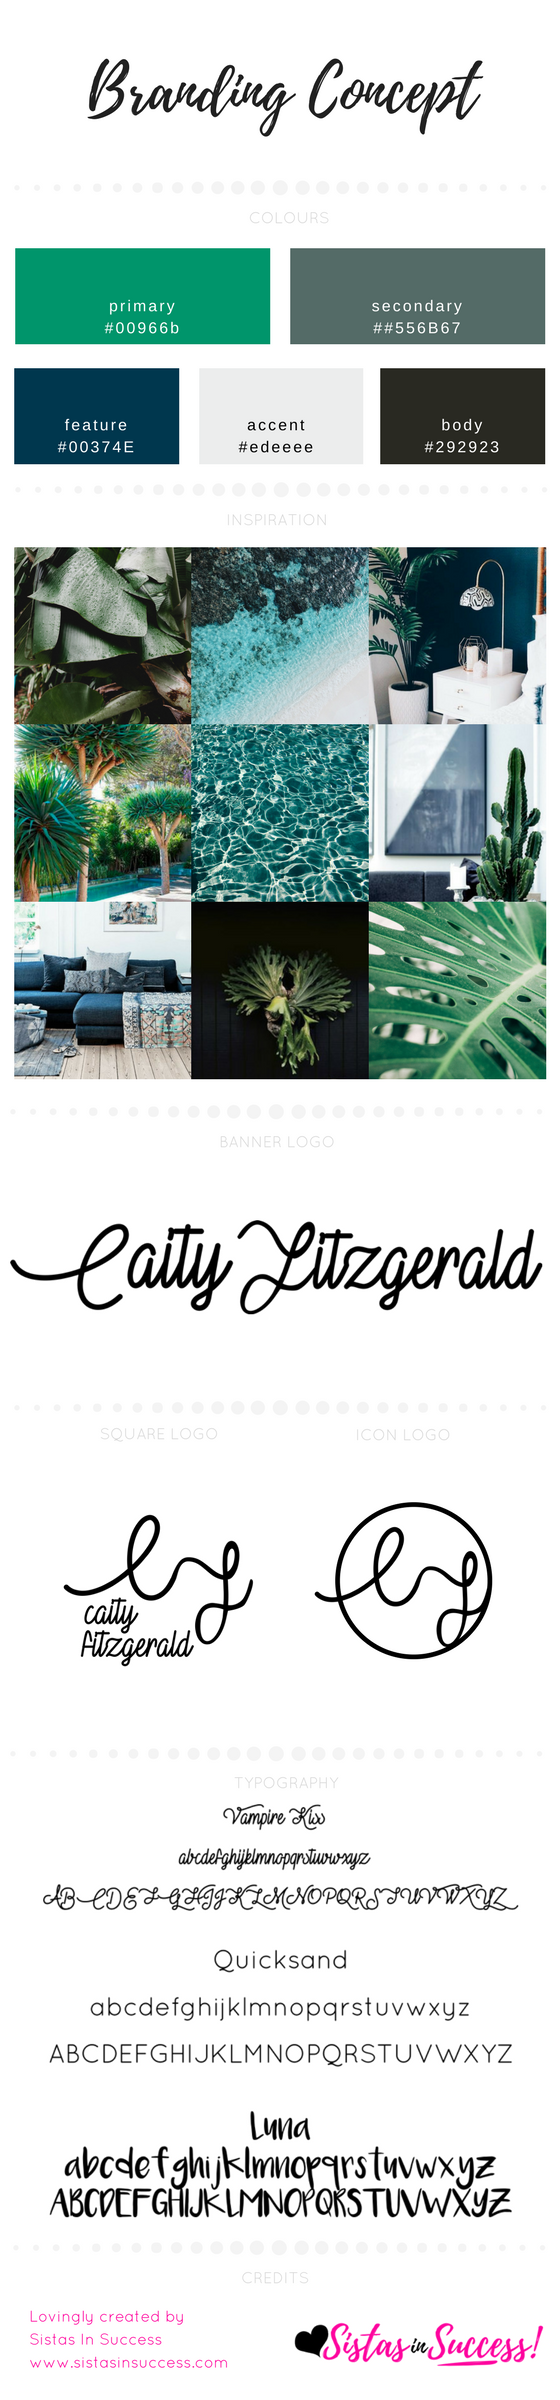 Caity Fitzgerald Branding Concept